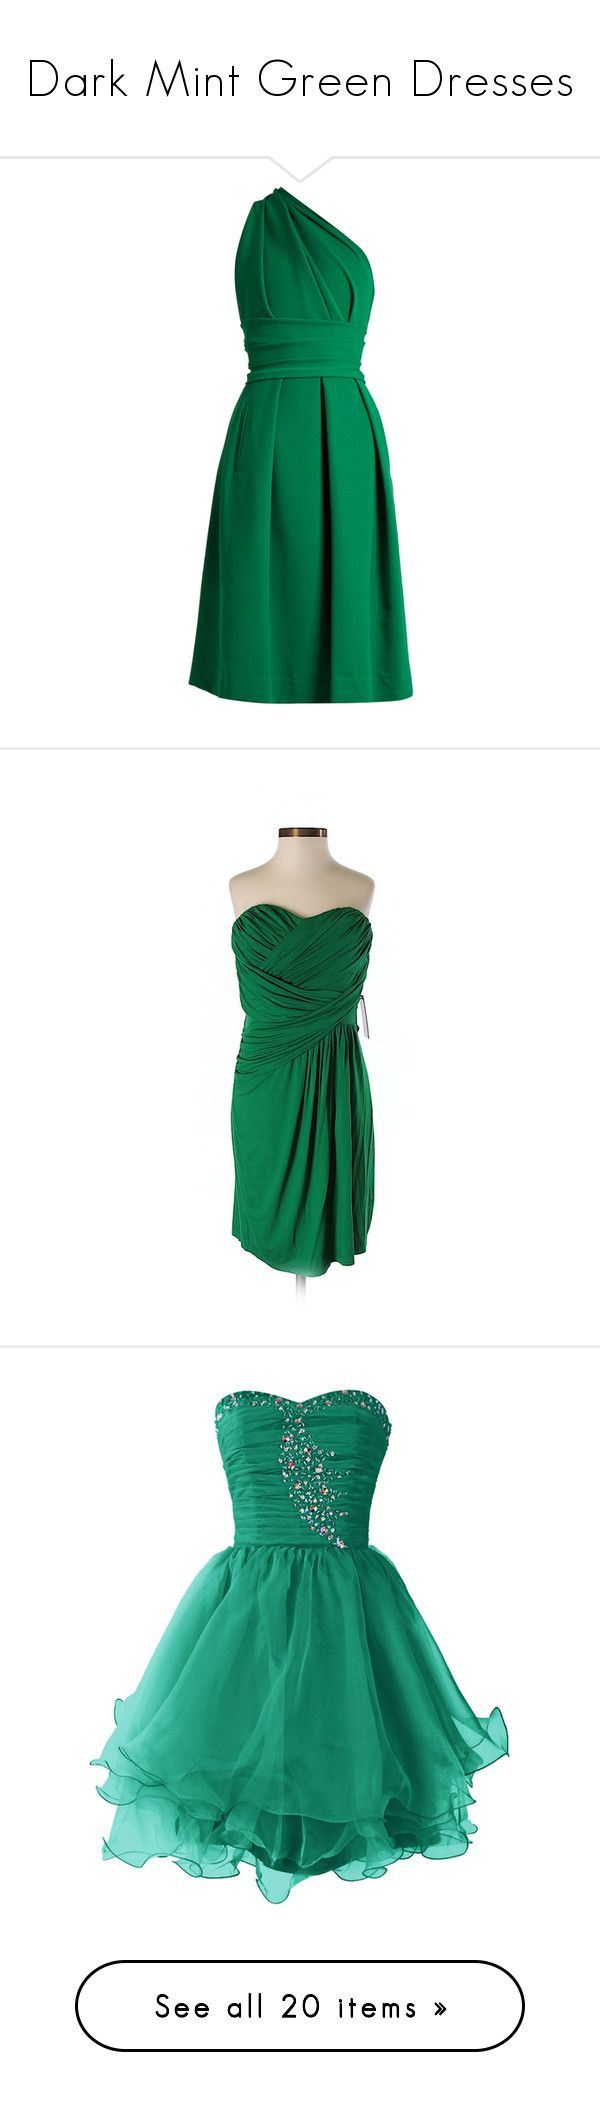 """""""Dark Mint Green Dresses"""" by tegan-b-riley on Polyvore featuring dresses, one shoulder dresses, one sleeve cocktail dress, pleated dresses, lace up dress, stretch satin dress, dark green, green dress, viscose dresses and green color dress"""